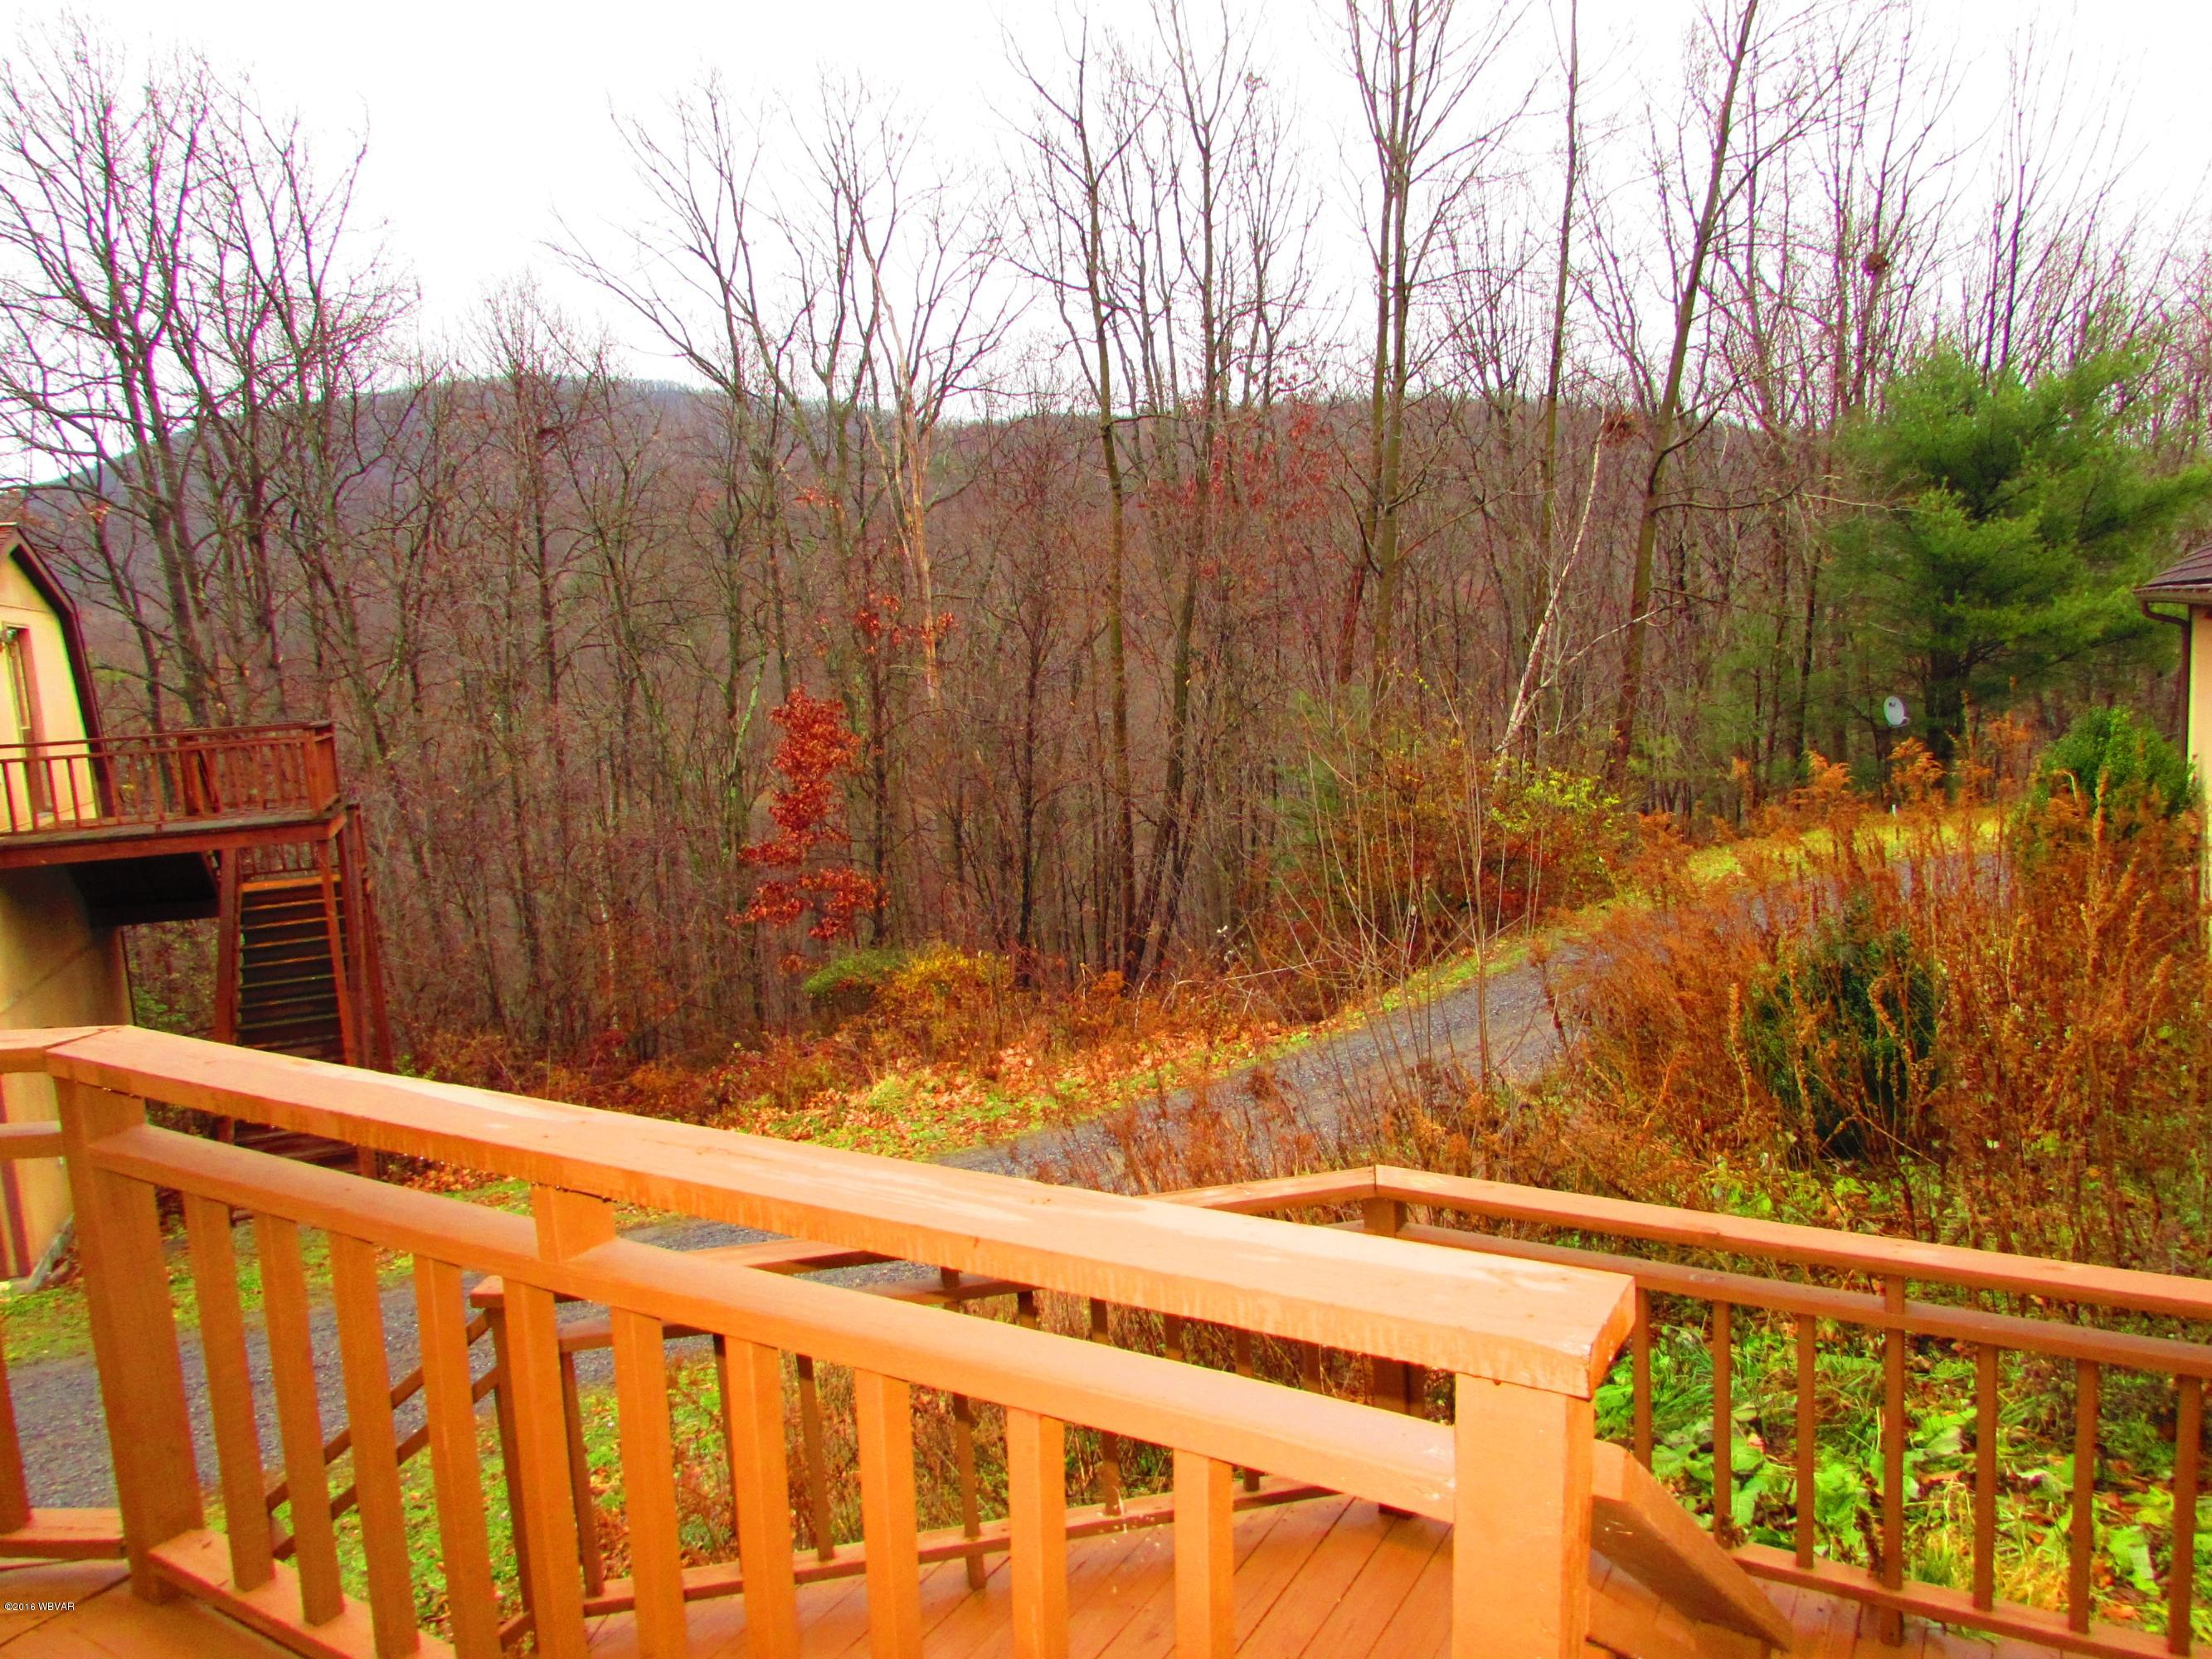 296 RICHNER HOLLOW ROAD, Howard, PA 16841, 4 Bedrooms Bedrooms, ,2.5 BathroomsBathrooms,Residential,For sale,RICHNER HOLLOW,WB-79353